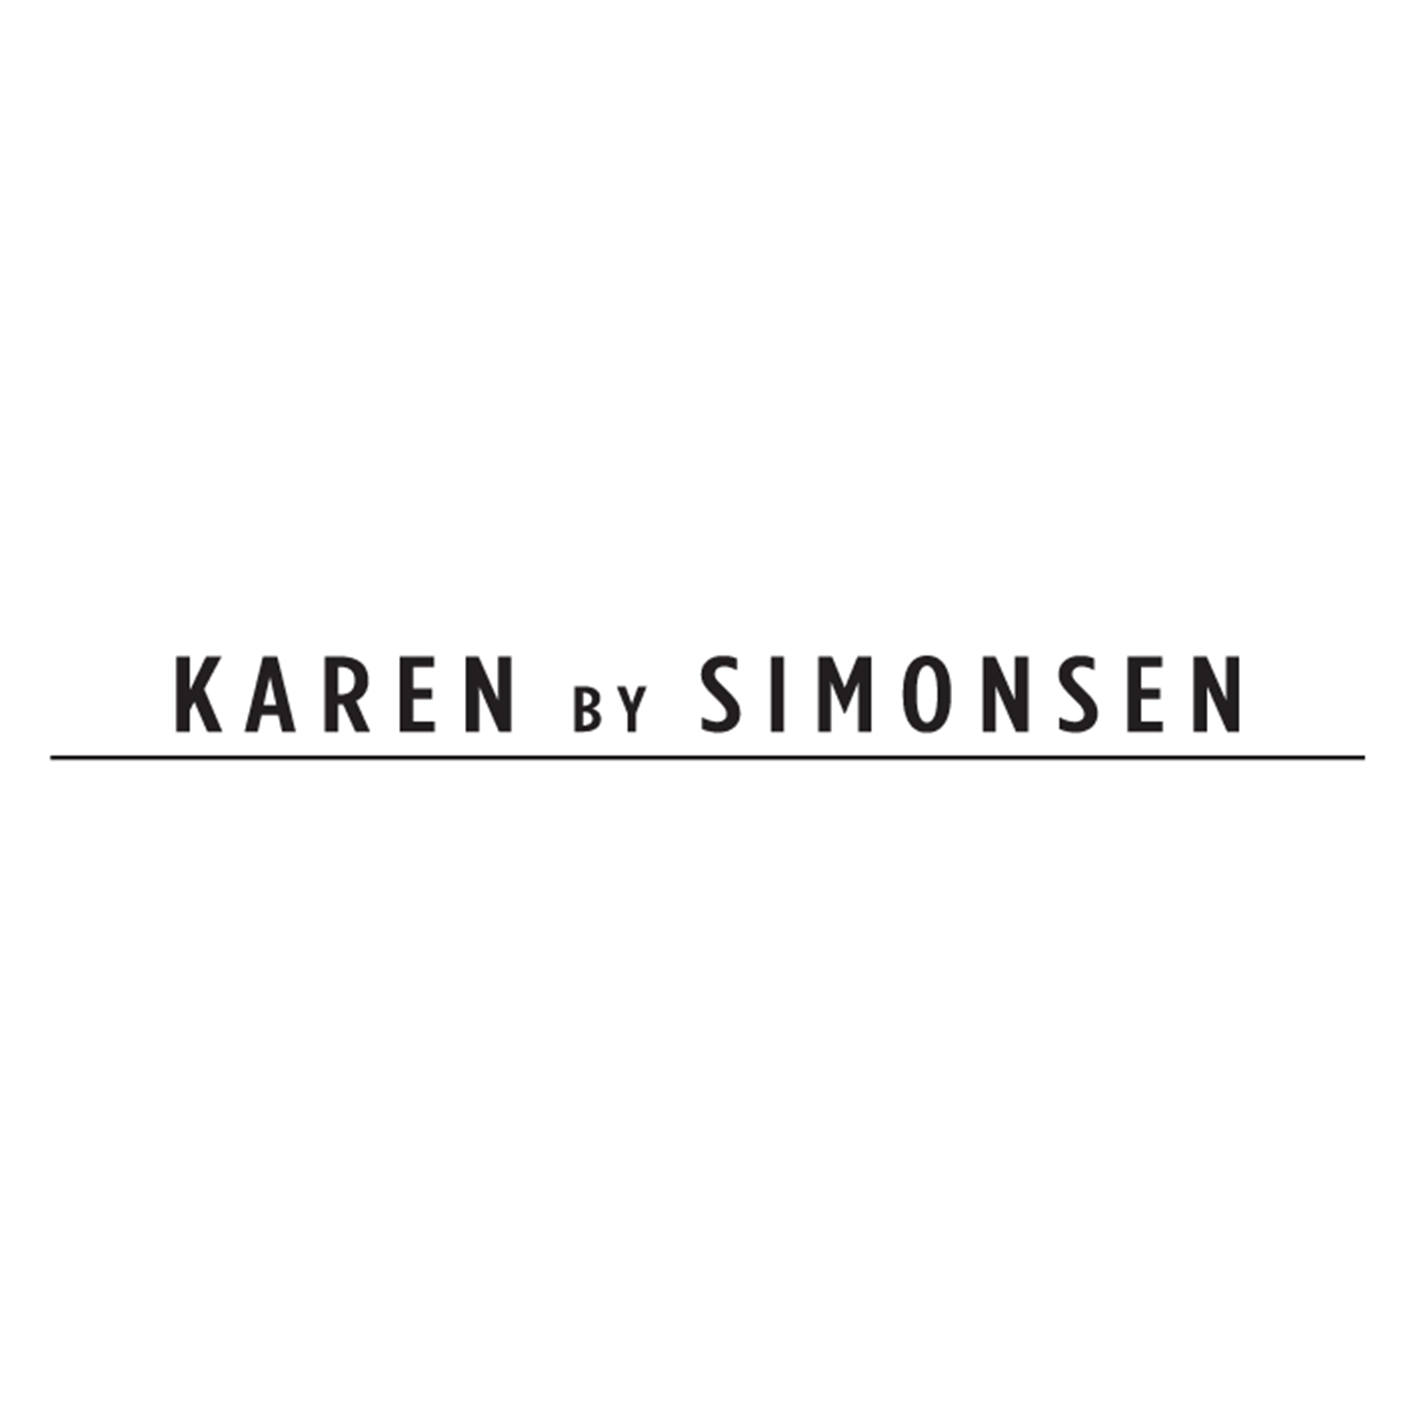 Karen by Simonsen